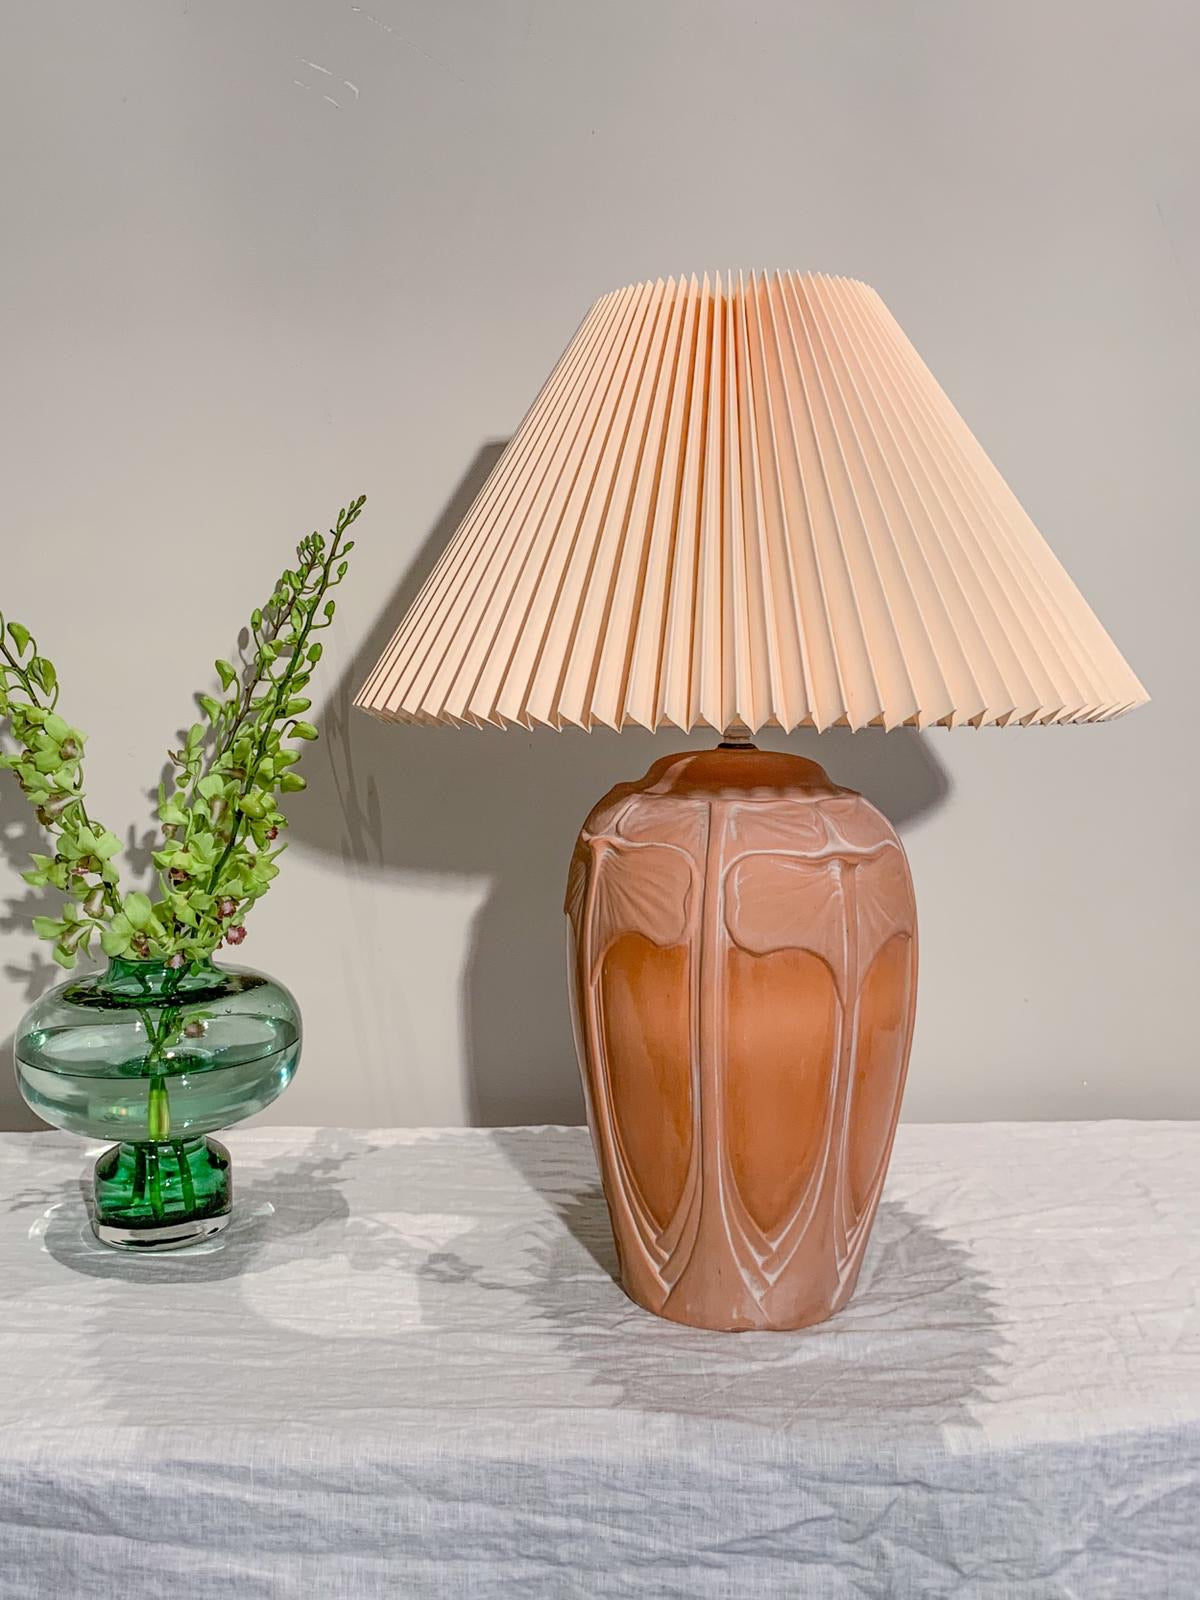 Terra-cotta lamp with pleated shade